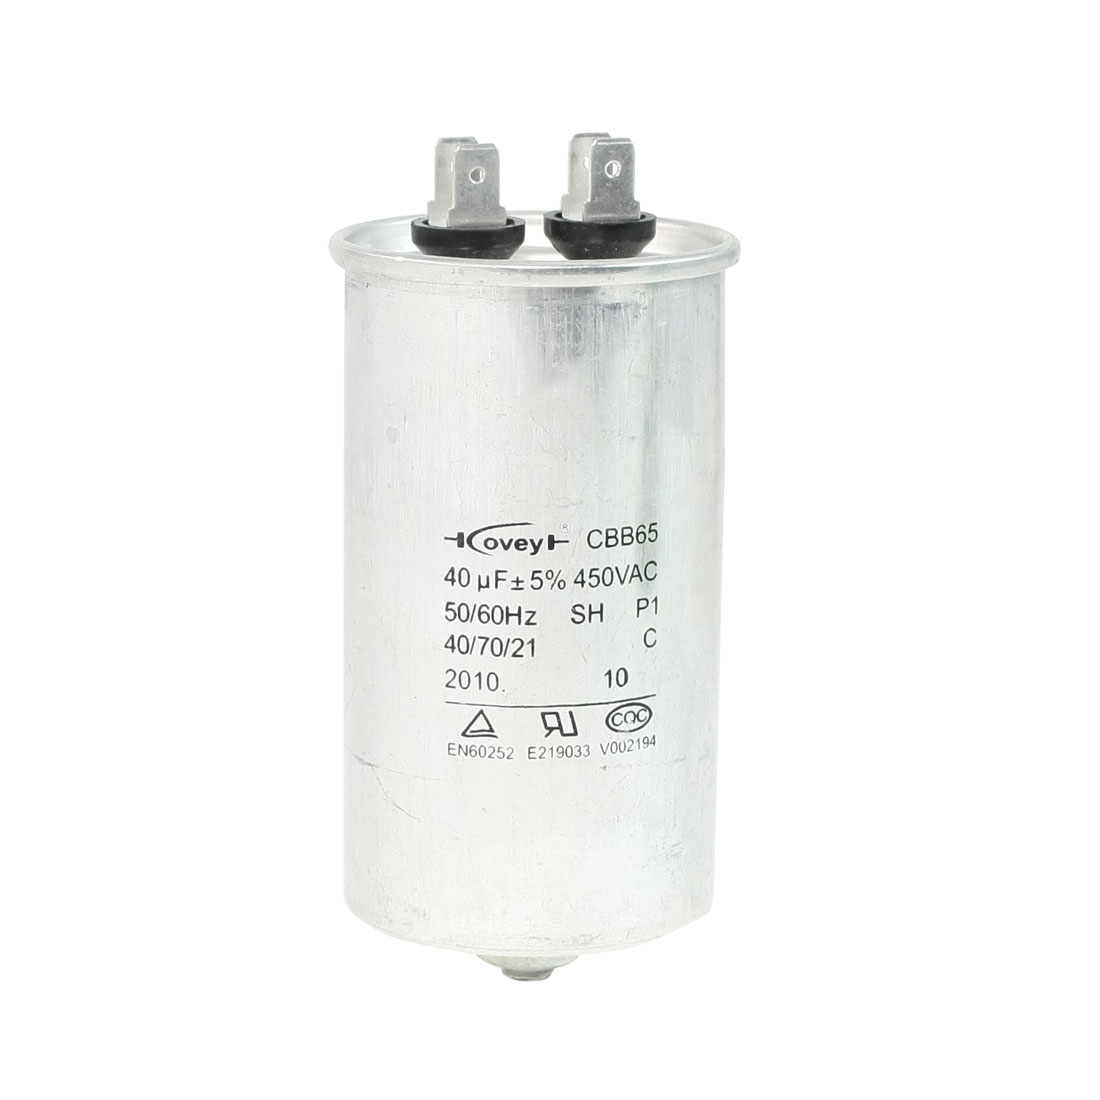 Air Conditioner AC 450V 40uF Cylindrical Motor Capacitor CBB65